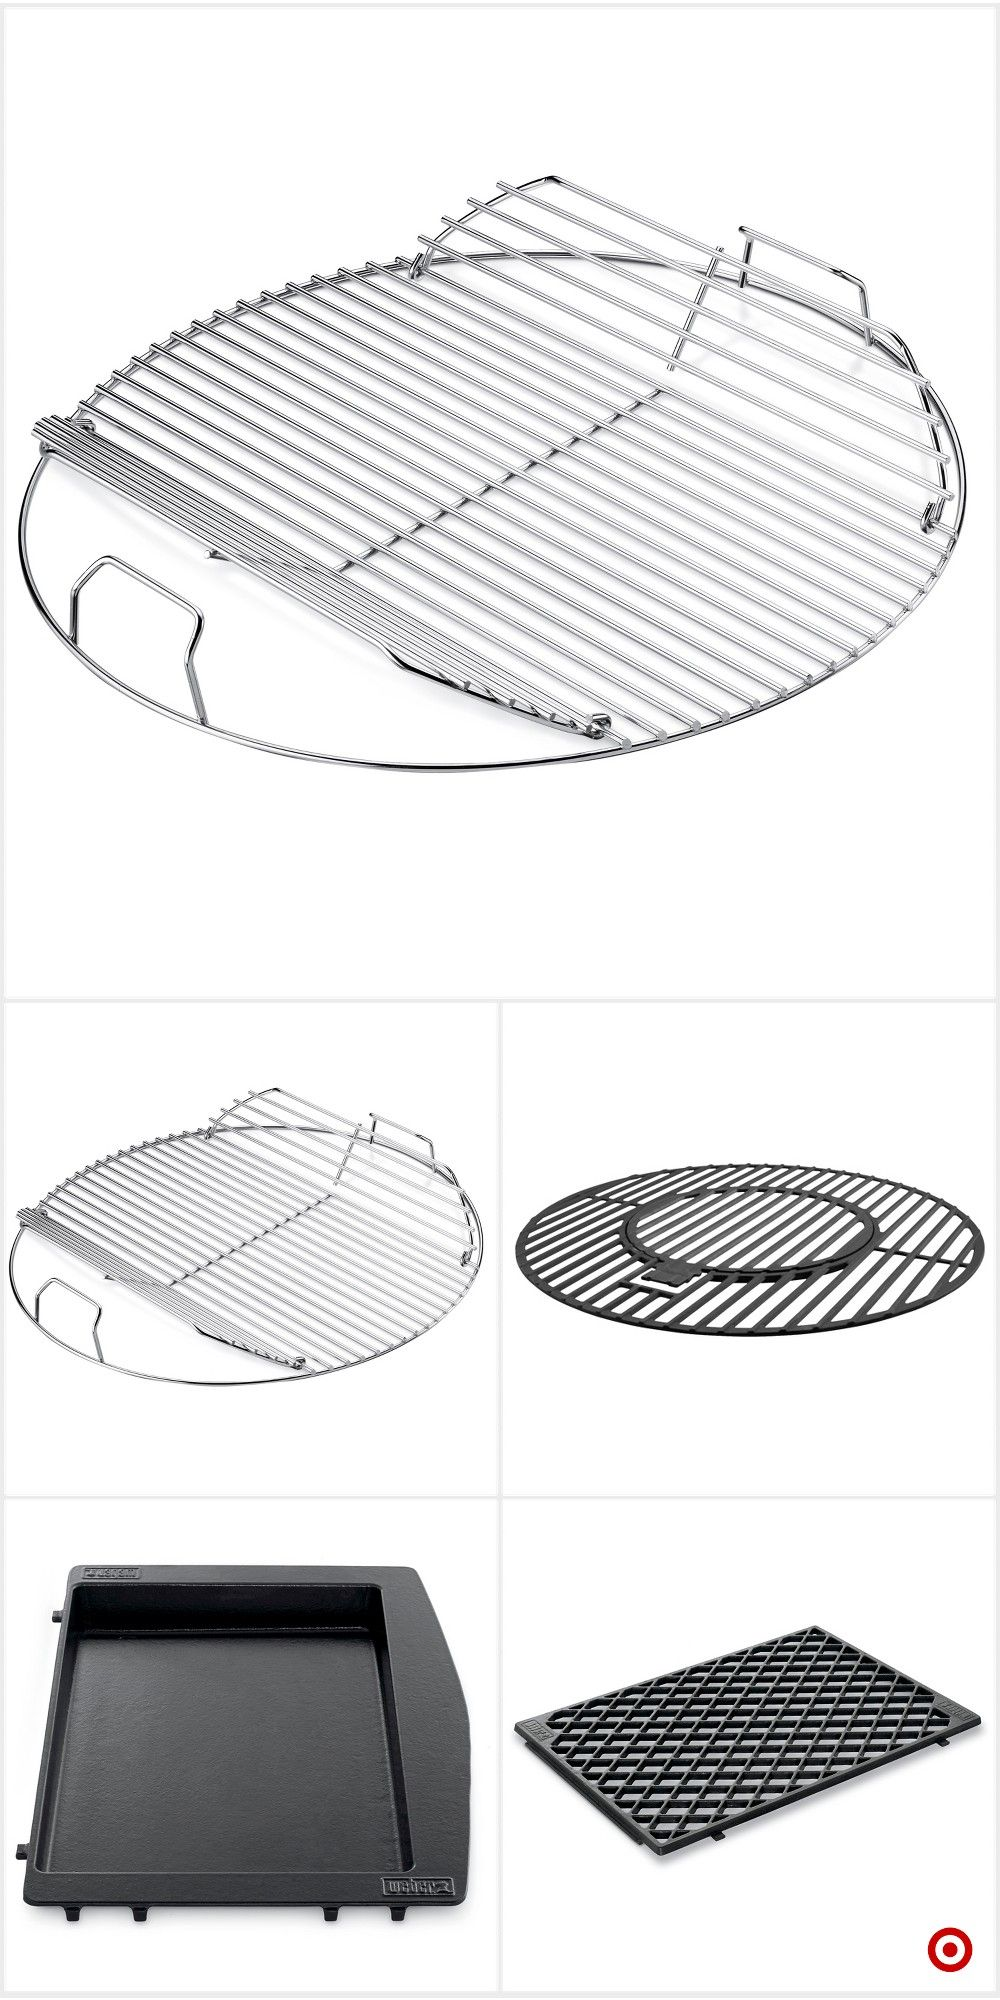 Luggage Rack Target Amazing Shop Target For Grill Grate You Will Love At Great Low Pricesfree Decorating Design